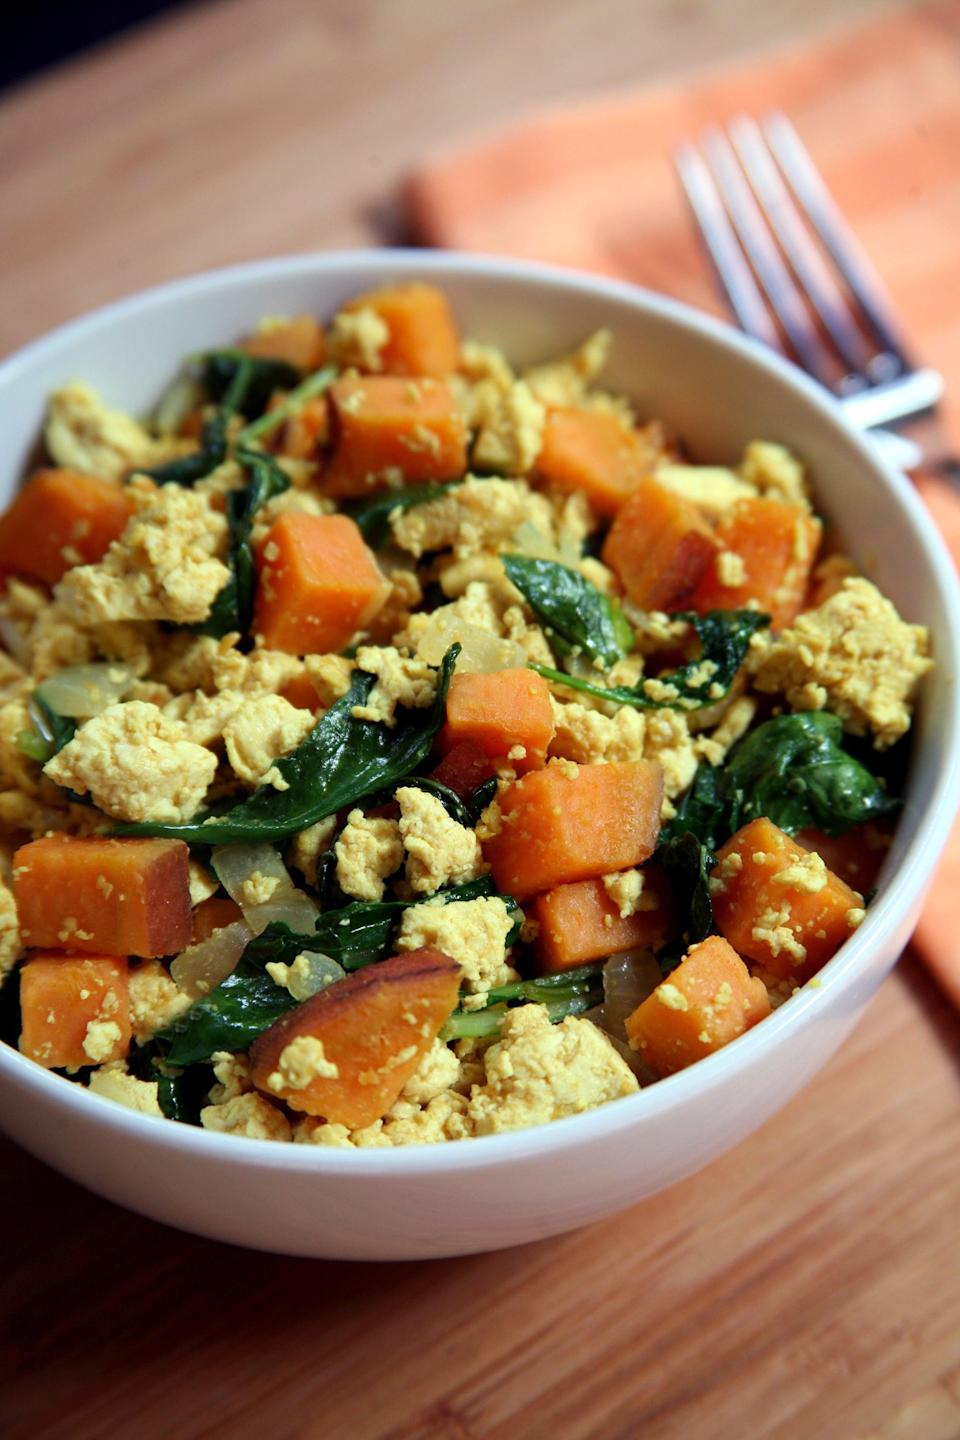 """<p>This tofu scramble is packed with protein: almost 19 grams for just under 270 calories. It could also make a great lunch or dinner.</p> <p><strong>Get the recipe:</strong> <a href=""""https://www.popsugar.com/fitness/Tofu-Scramble-Kale-Sweet-Potatoes-35566619"""" class=""""link rapid-noclick-resp"""" rel=""""nofollow noopener"""" target=""""_blank"""" data-ylk=""""slk:tofu scramble with kale and sweet potatoes"""">tofu scramble with kale and sweet potatoes</a></p>"""